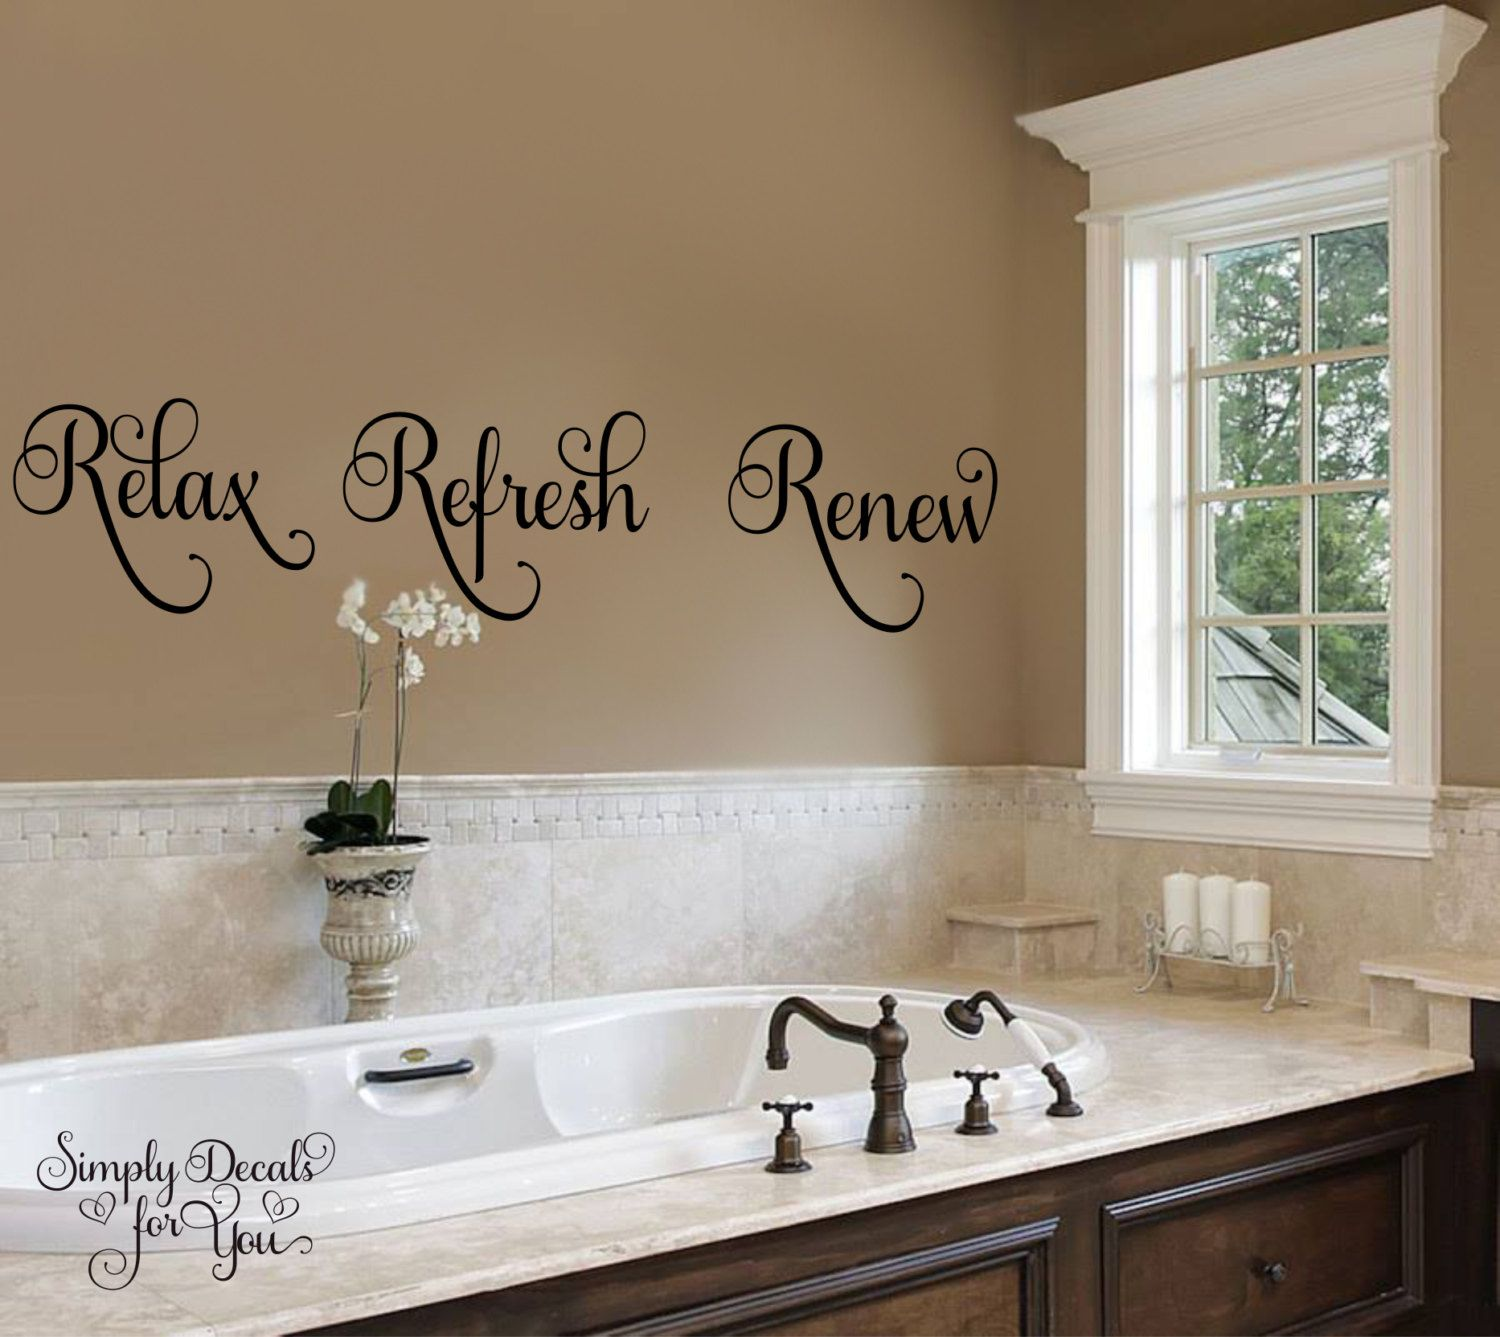 relax refresh renew bathroom wall decal bathroom decal wall relax refresh renew bathroom wall decal bathroom decal wall decal wall sticker home decor vinyl wall decal decal sticker wall decor